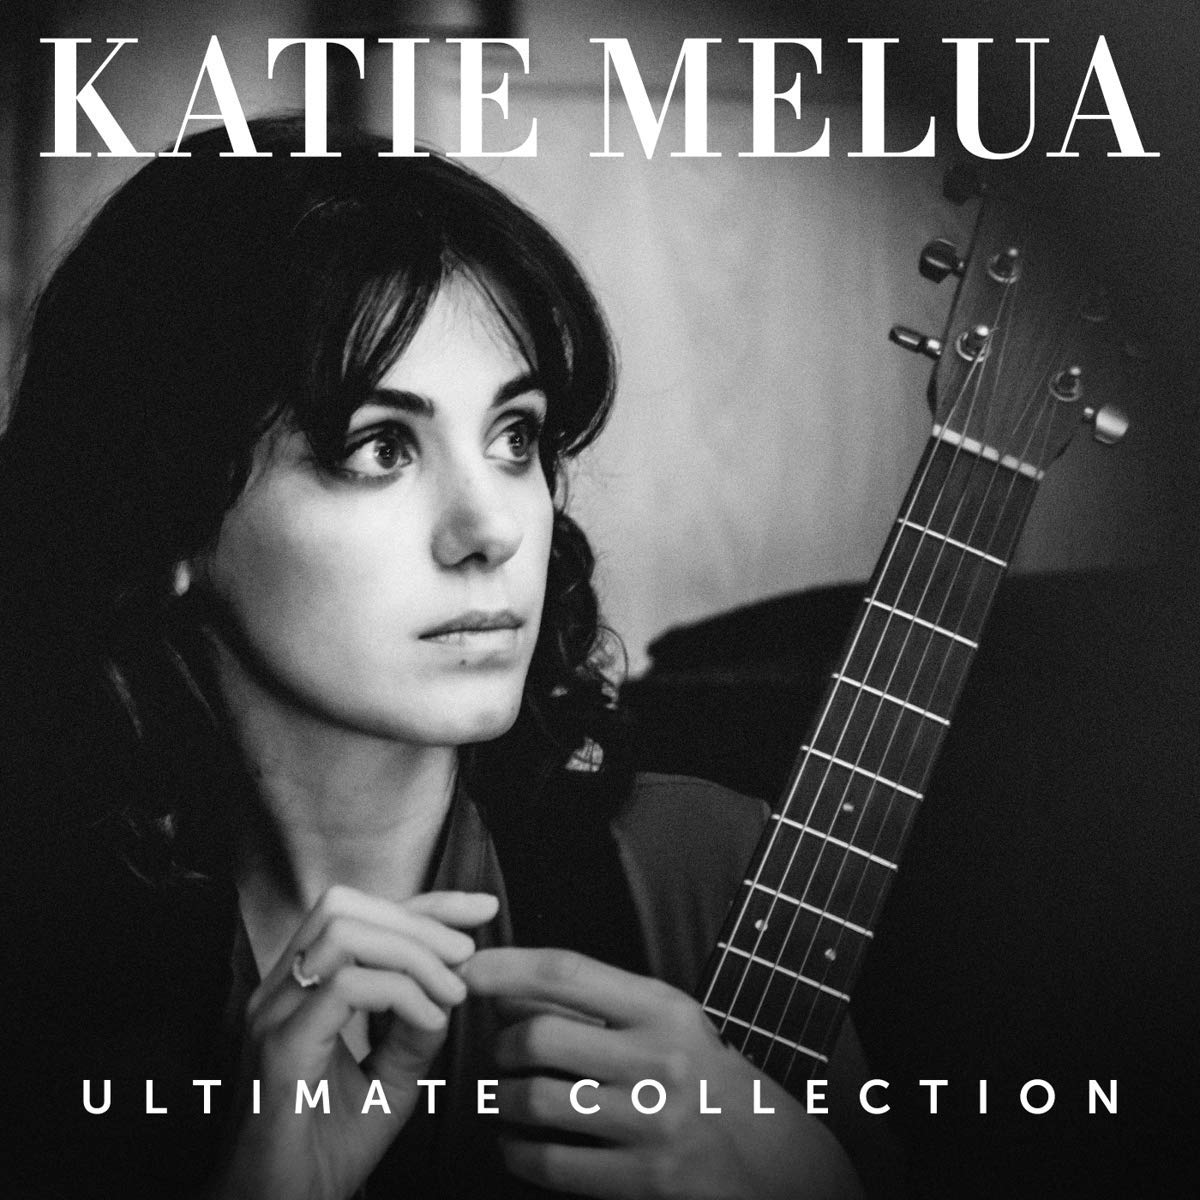 KATIE MELUA - ULTIMATE COLLECTION (2 CD) (CD)